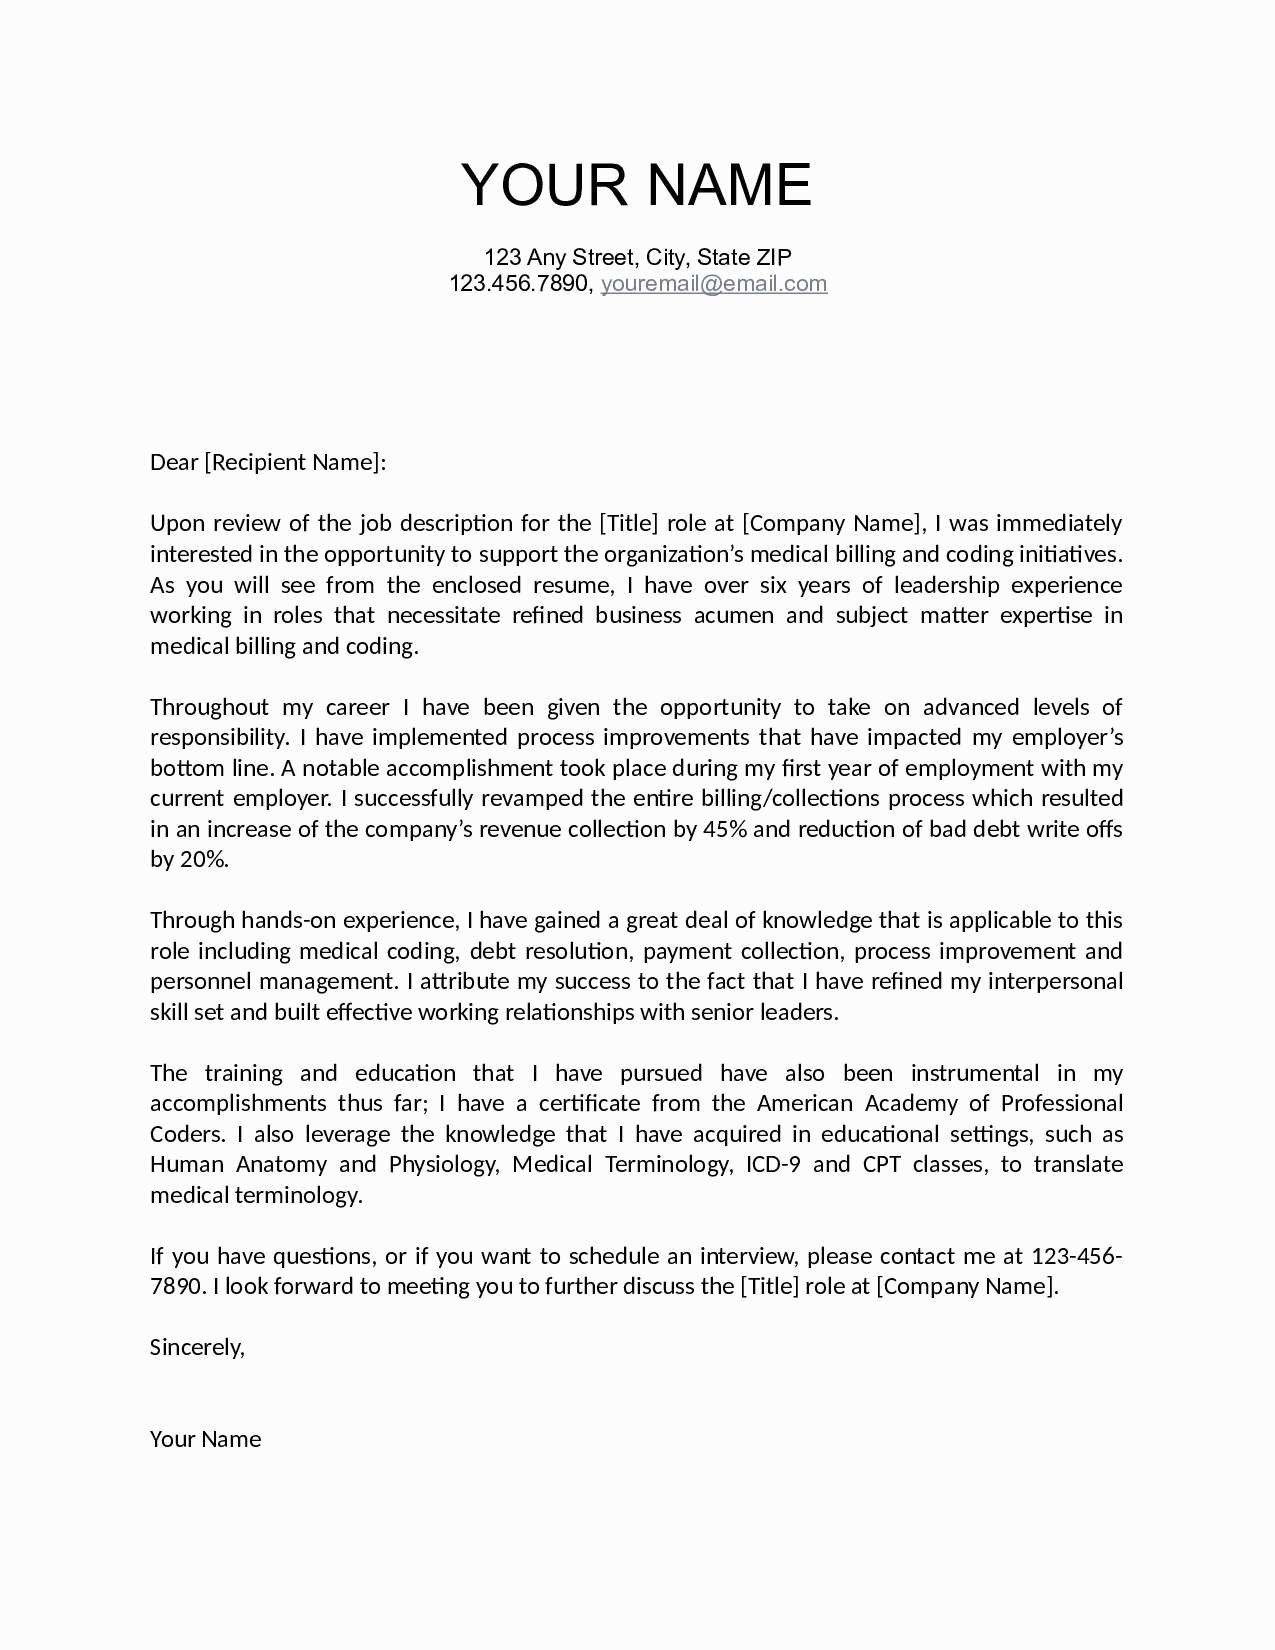 English Cover Letter Template - Covering Letter for Work Experience Best Job Fer Letter Template